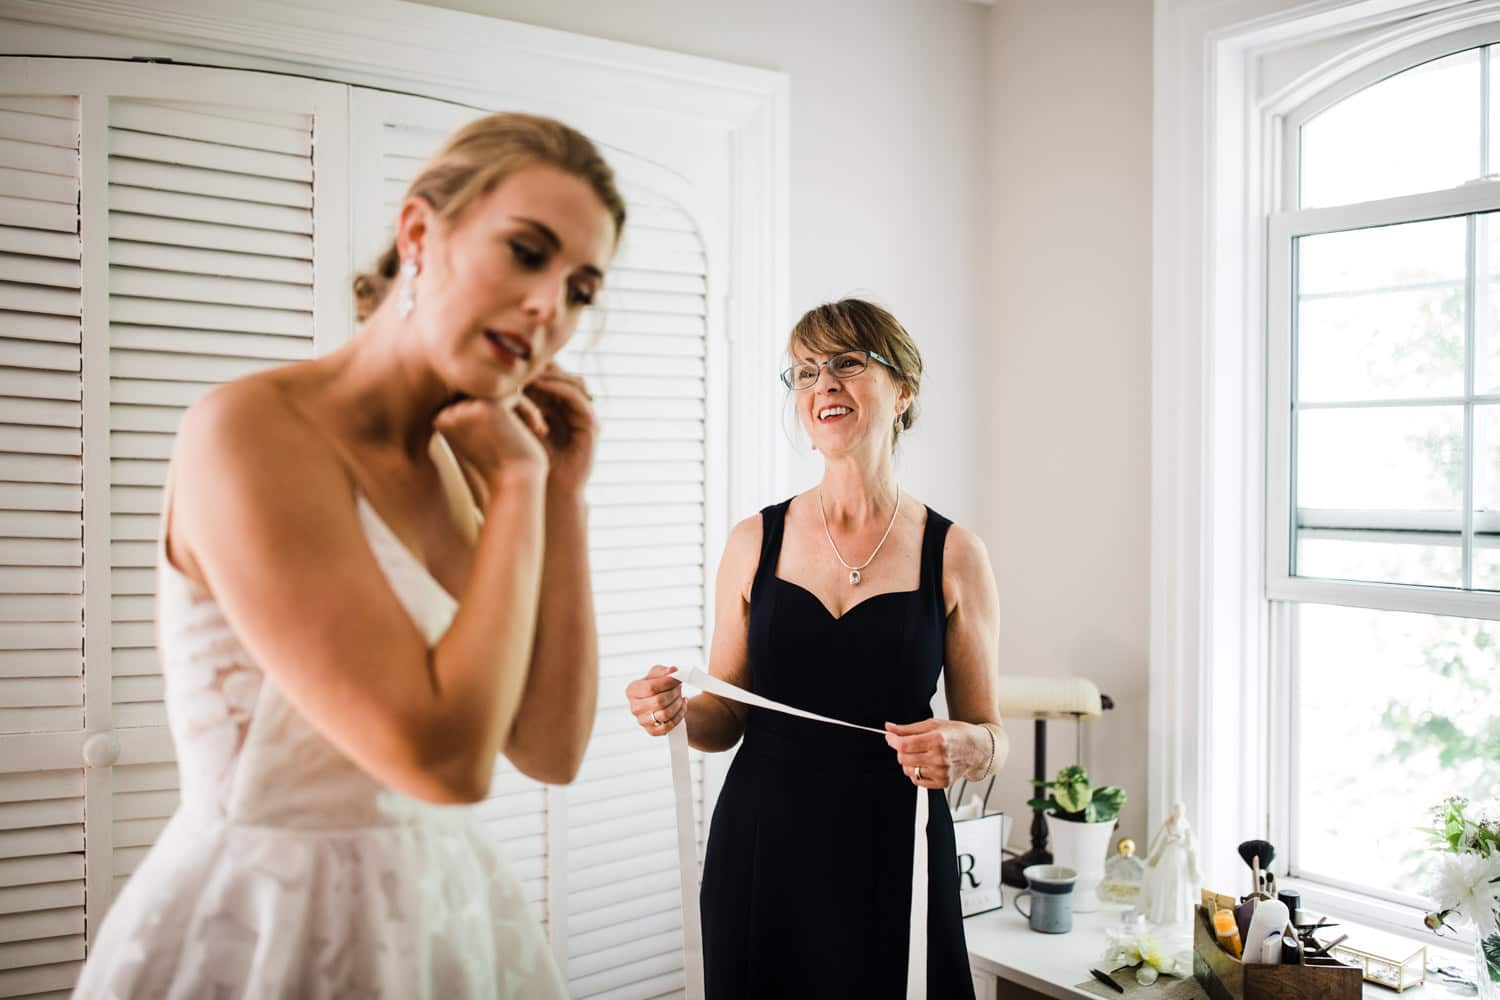 bride's mom helps her get dressed - backyard wedding